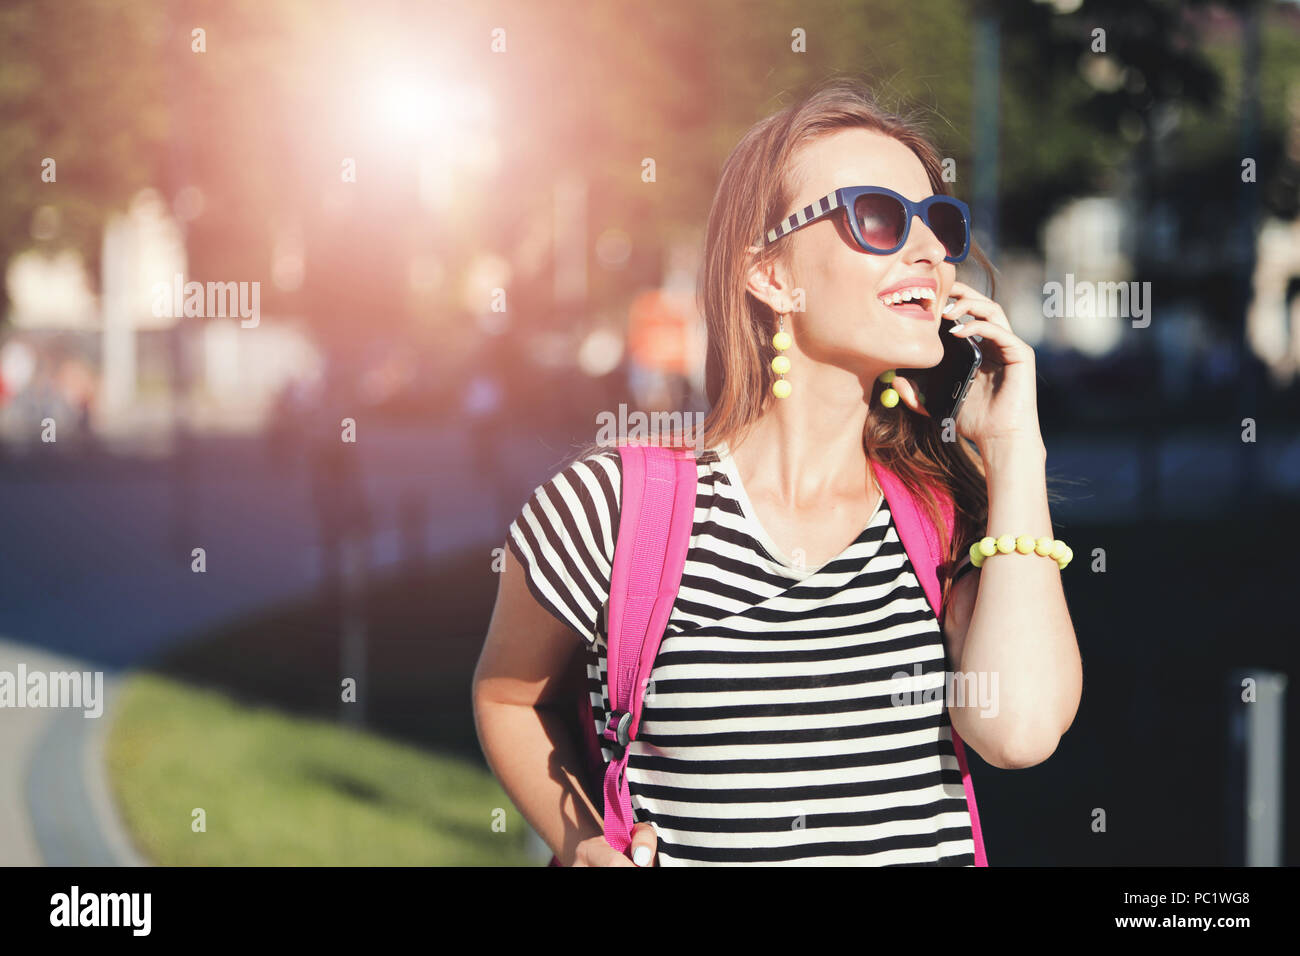 Cute stylish girl in sunglasses speaking on smartphone and walking with pink backpack at the summer street - Stock Image